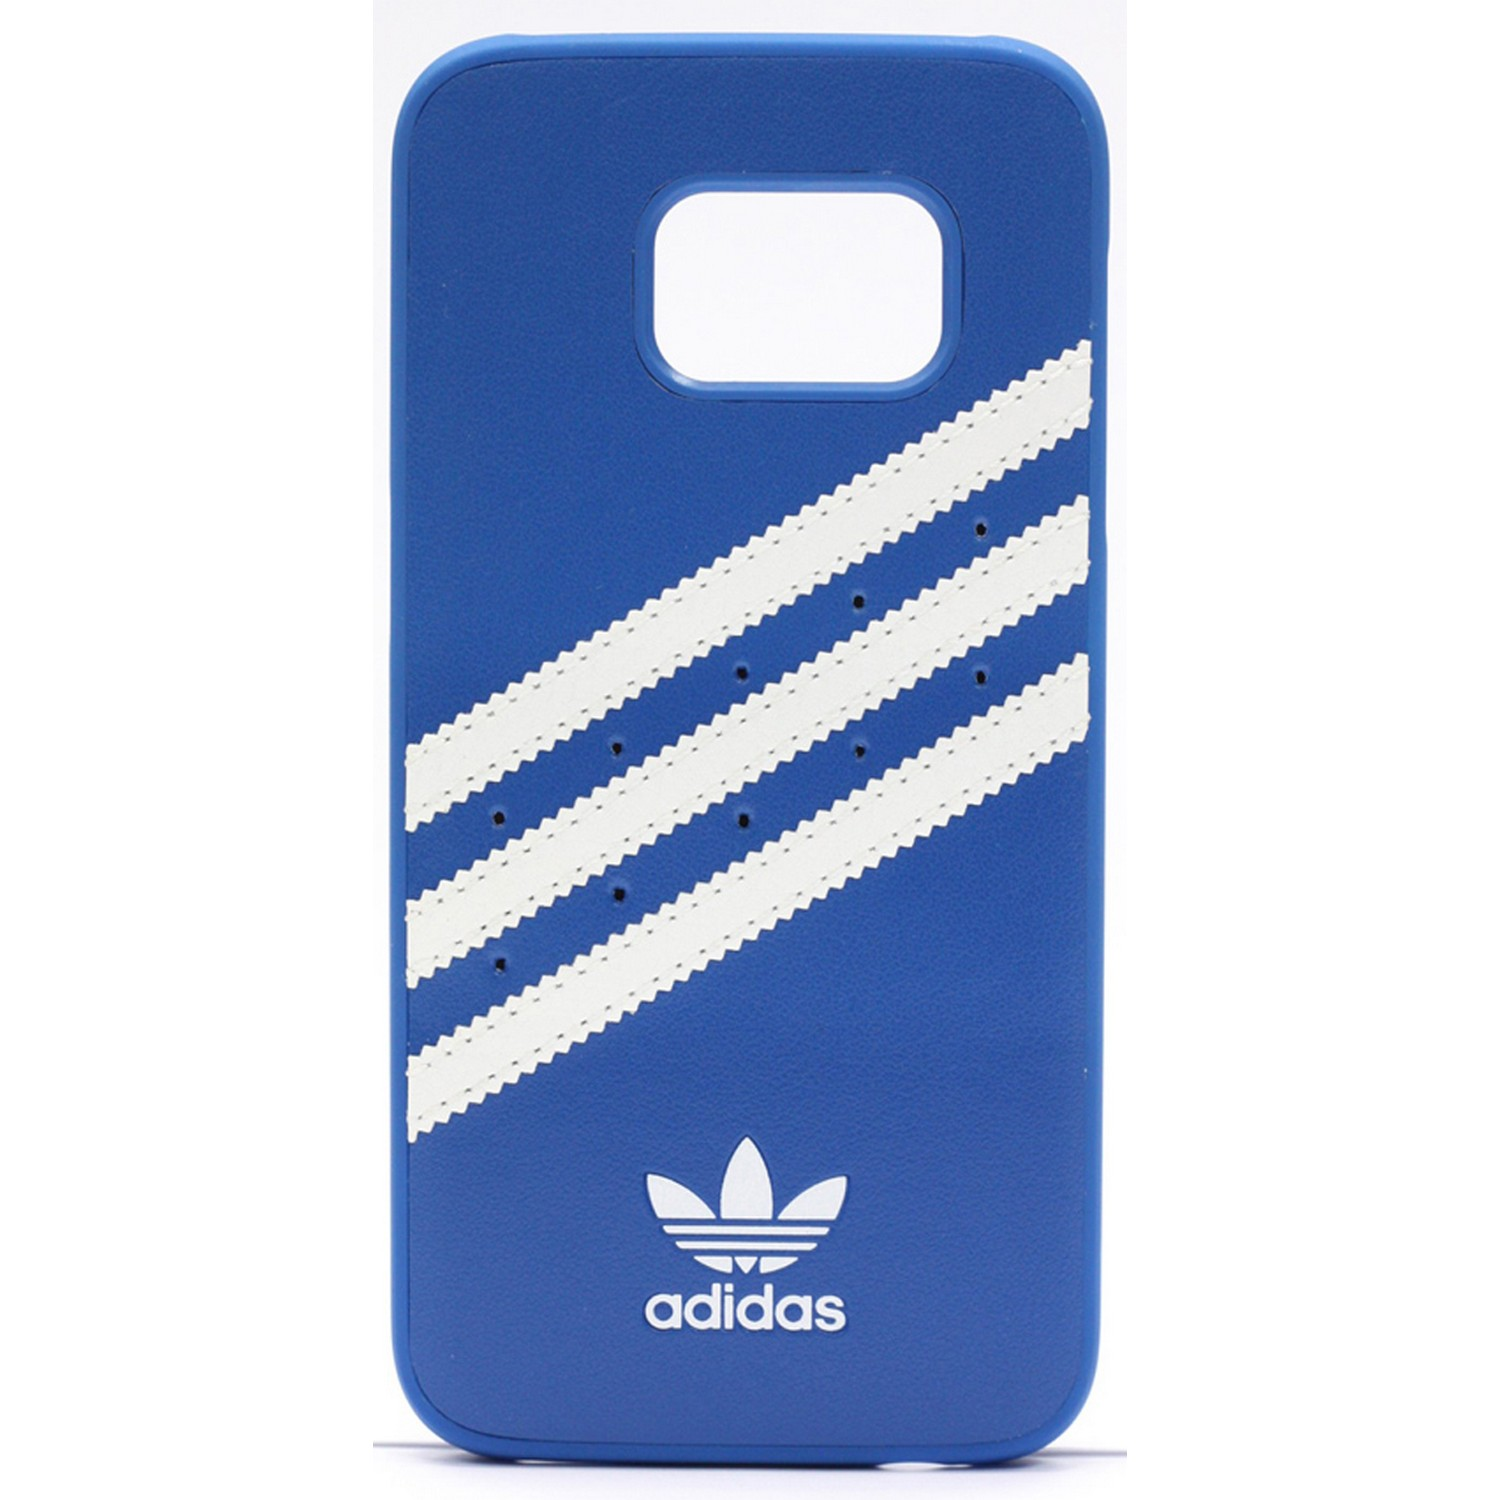 super popular 85997 6d4ca Case for Samsung Galaxy S7 (Blue/White) MOULDED